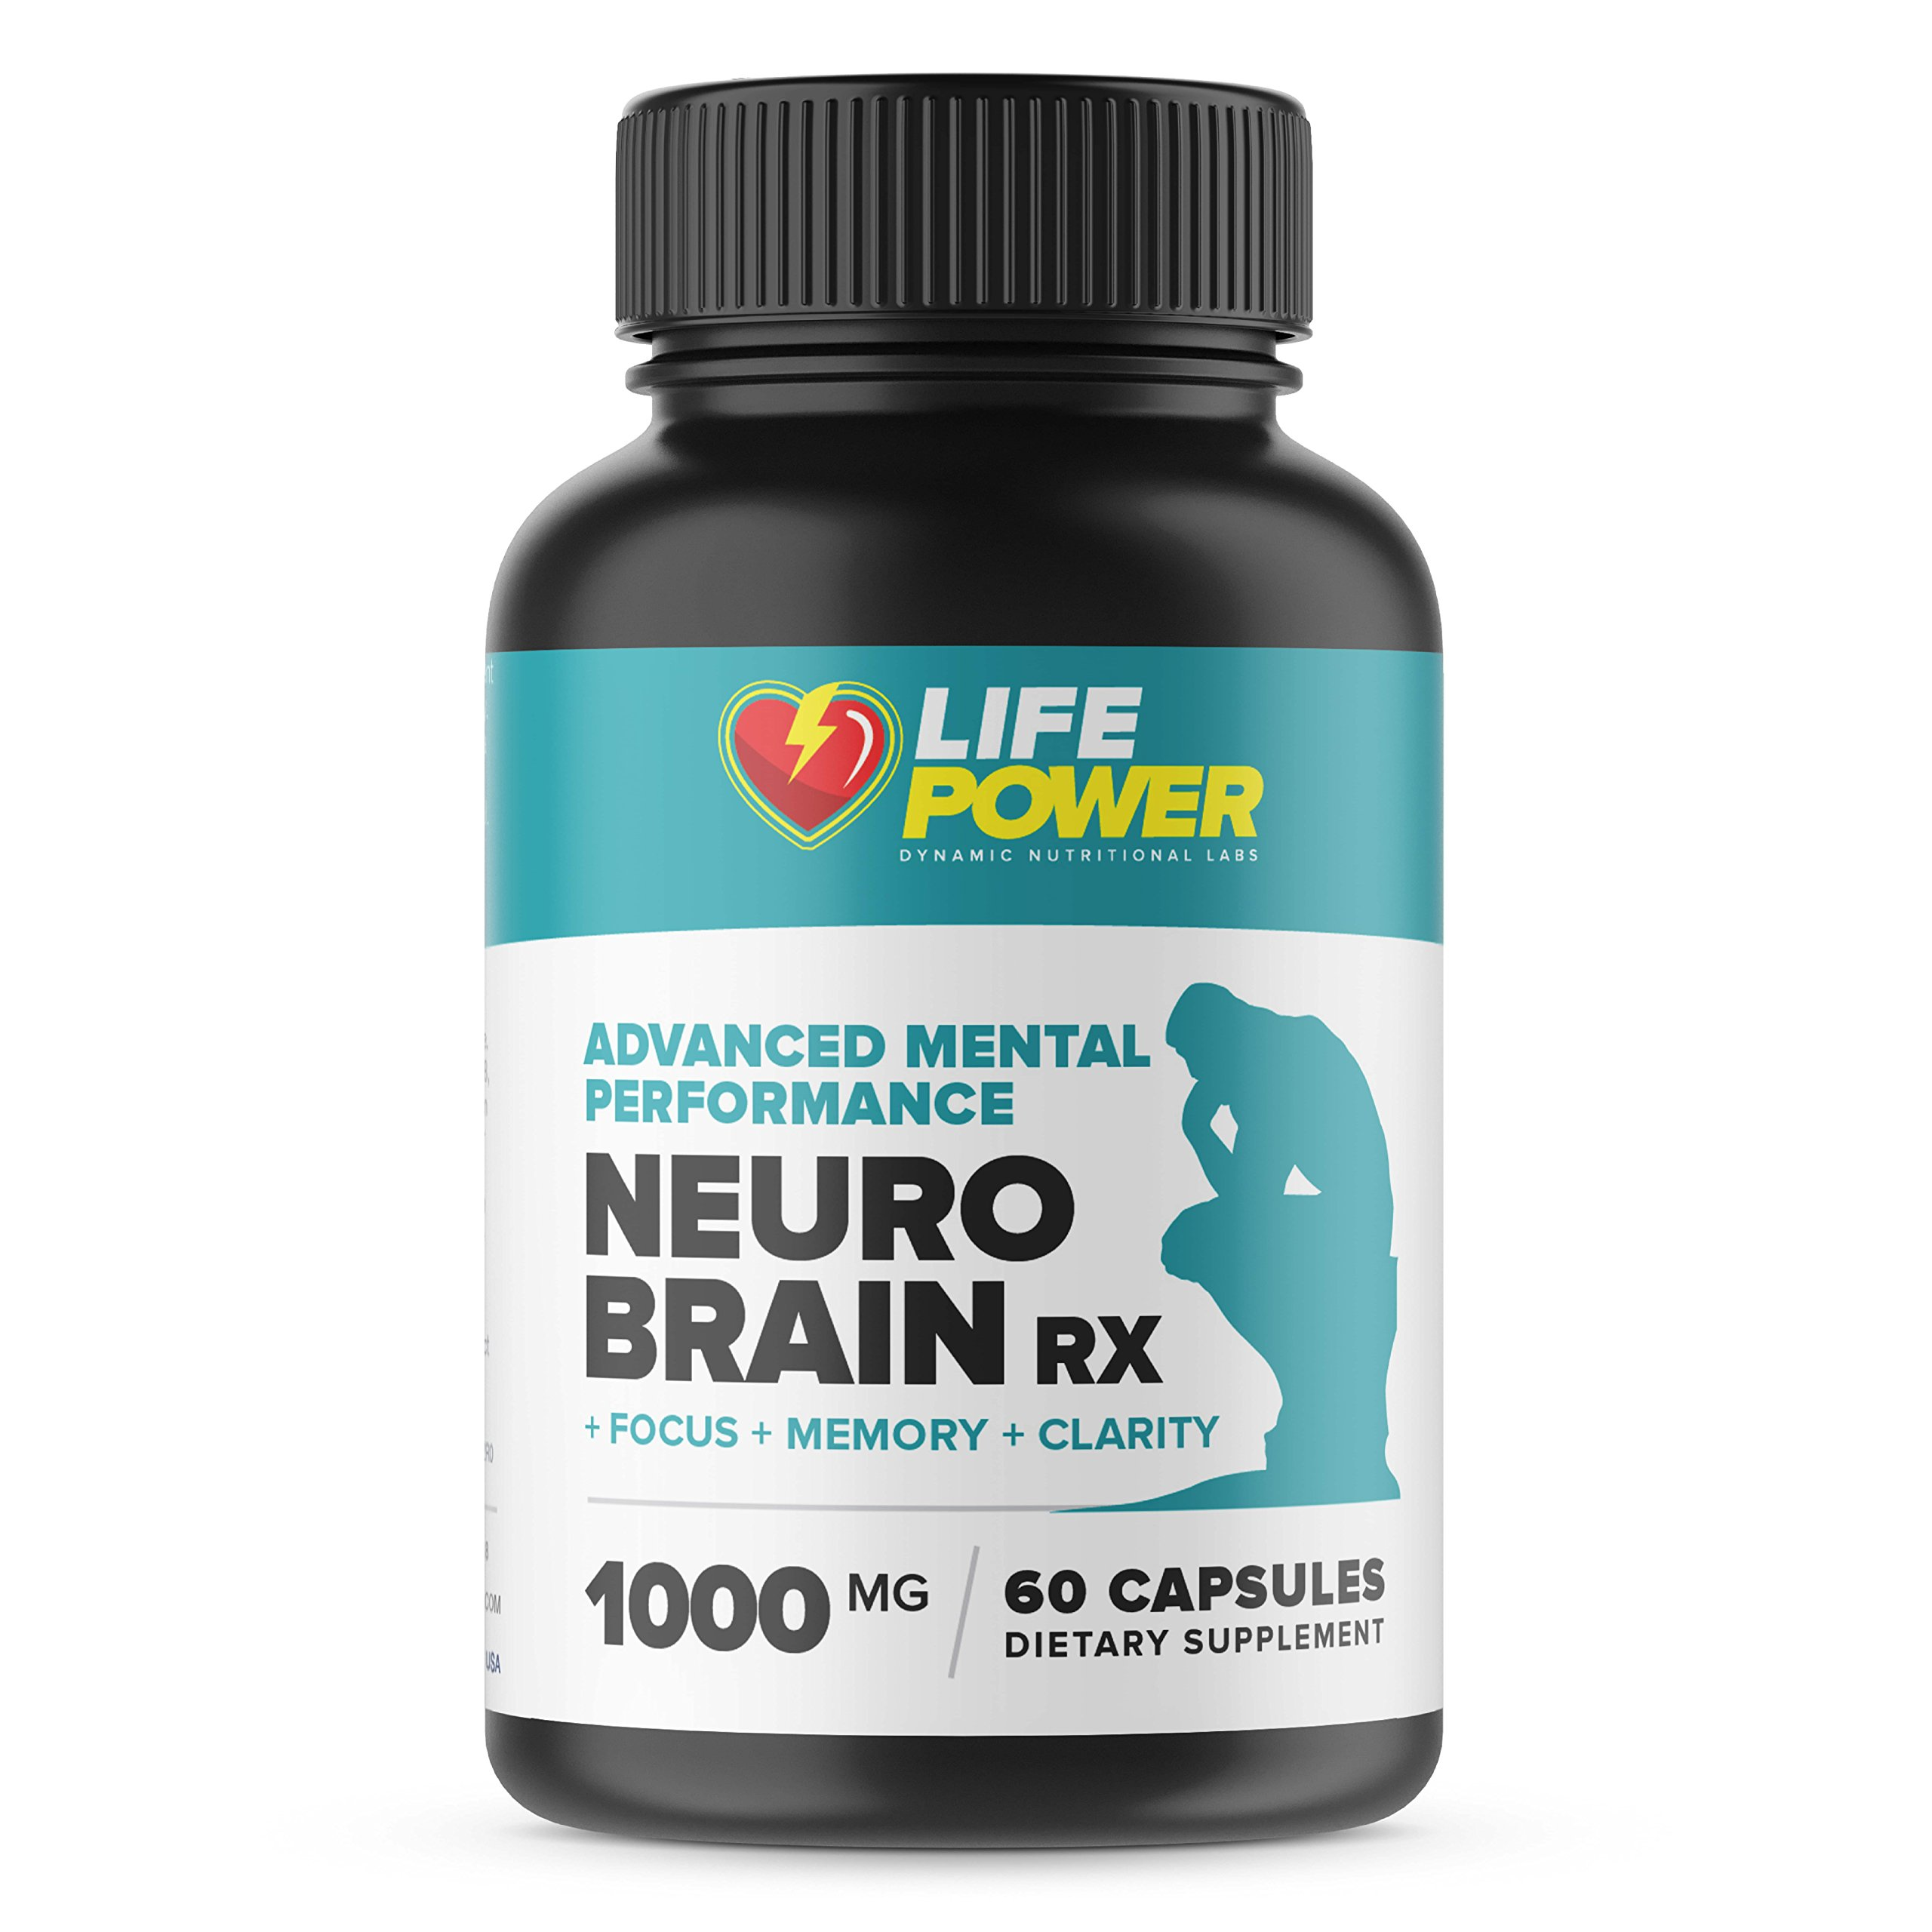 NEURO BRAIN RX- Brain Booster for Memory, Focus & Mental Clarity. 40+ Vitamins DMAE Herbal Nootropic Promotes Superior Brain Function in Men & Women. 60 Capsules.